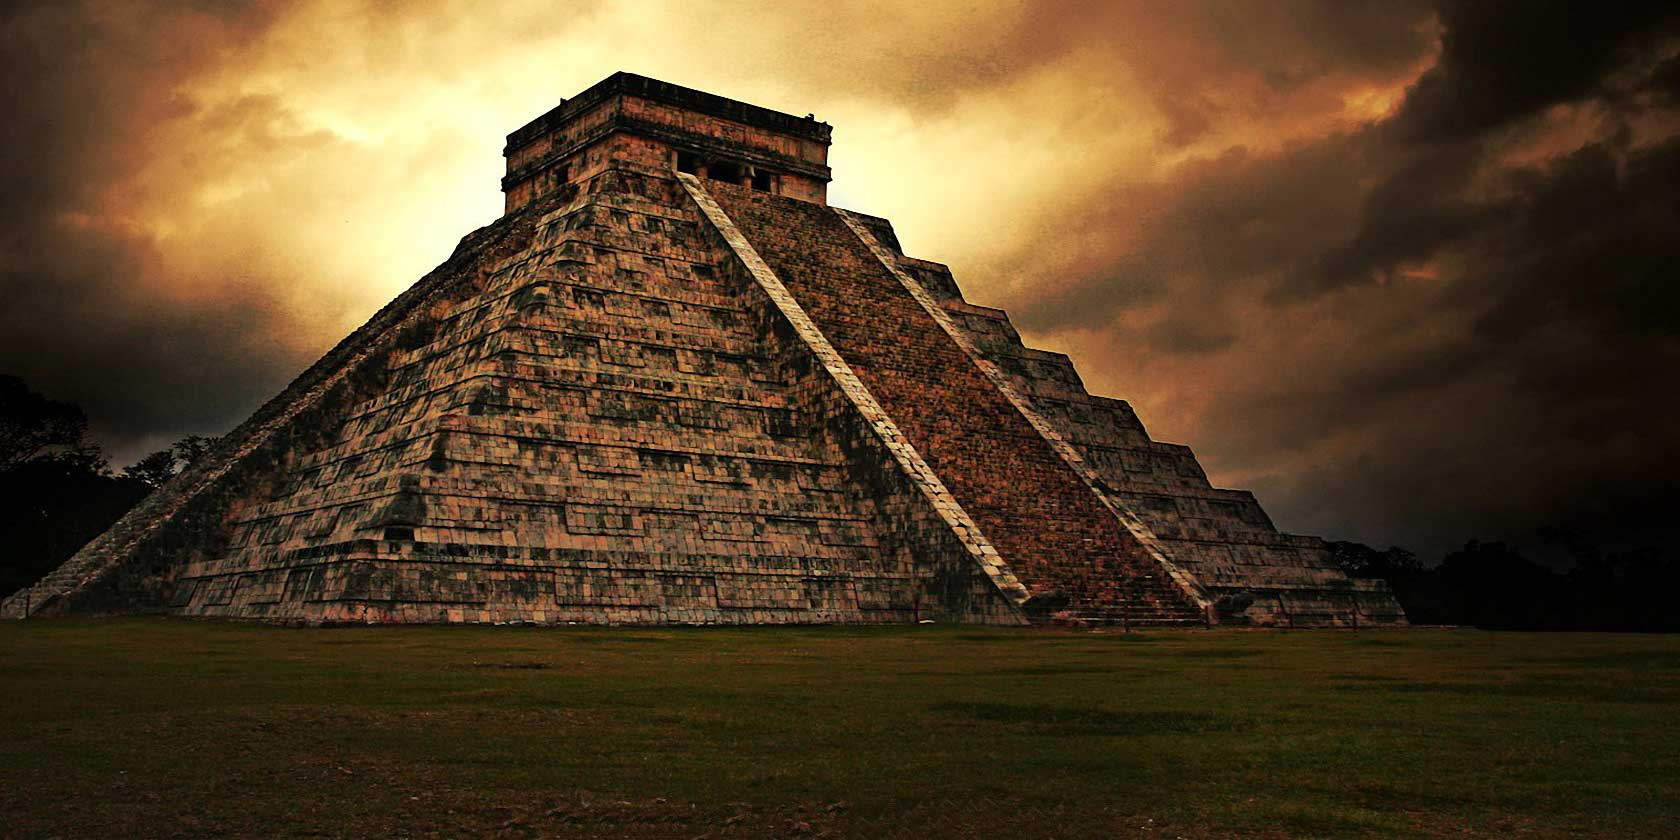 Ancient Maya Temple. Adobe Stock.